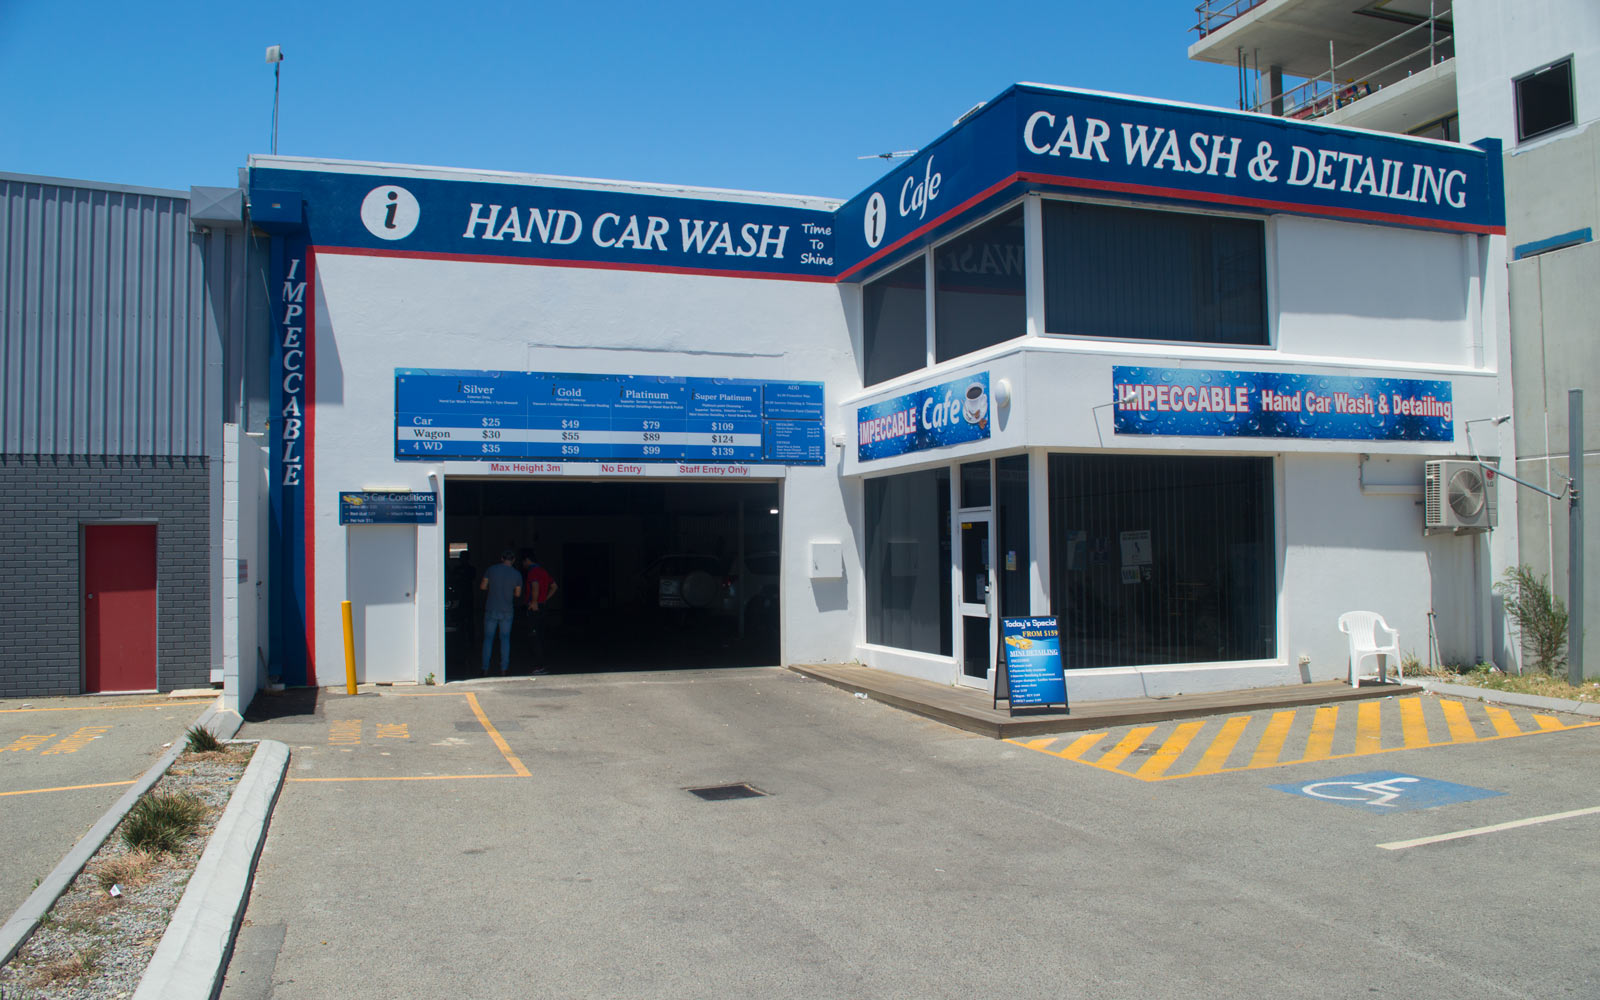 Impeccable Hand Car Wash & Detailing East Perth Store